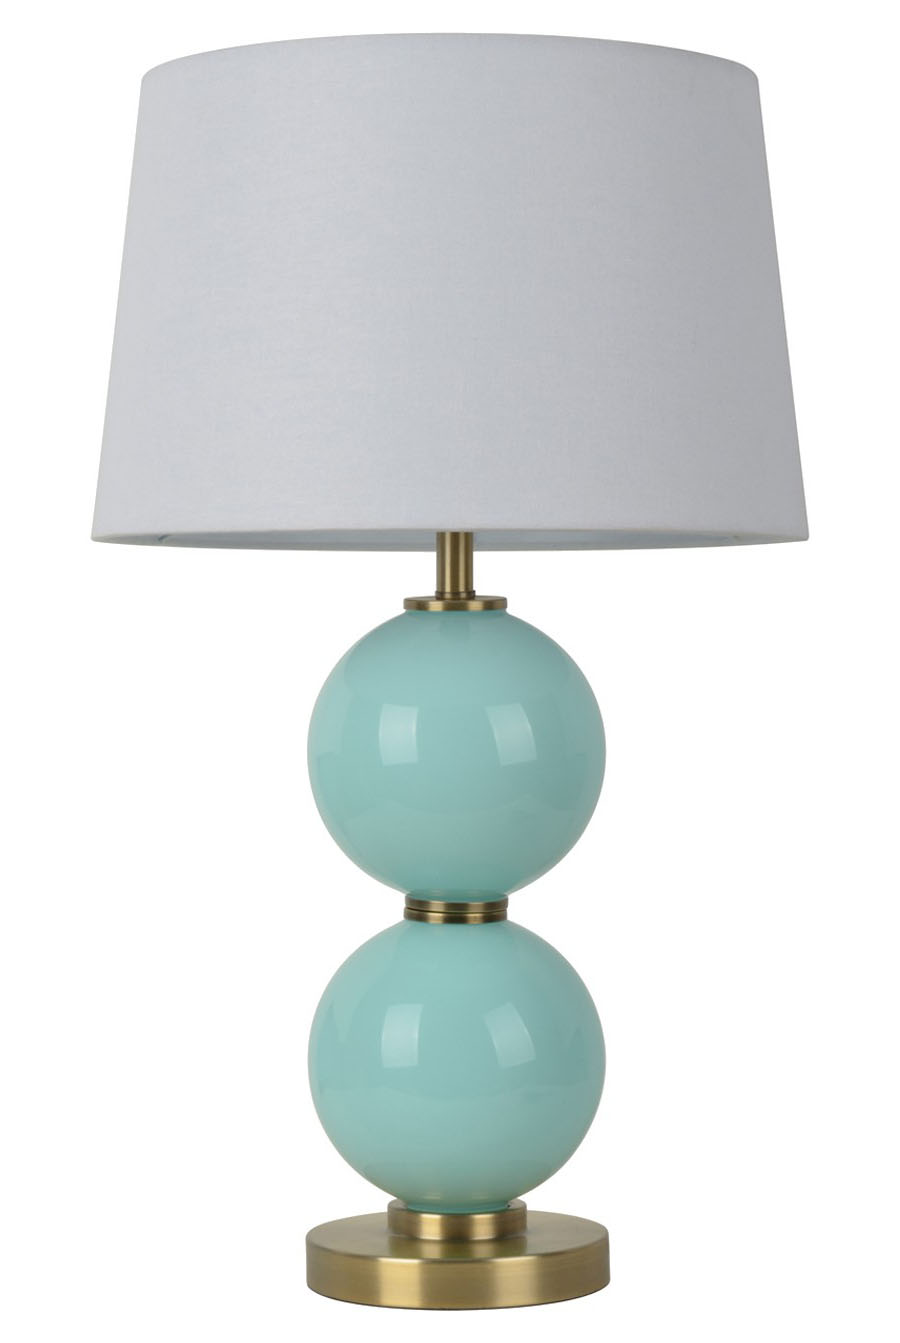 glass touch lamp photo - 3